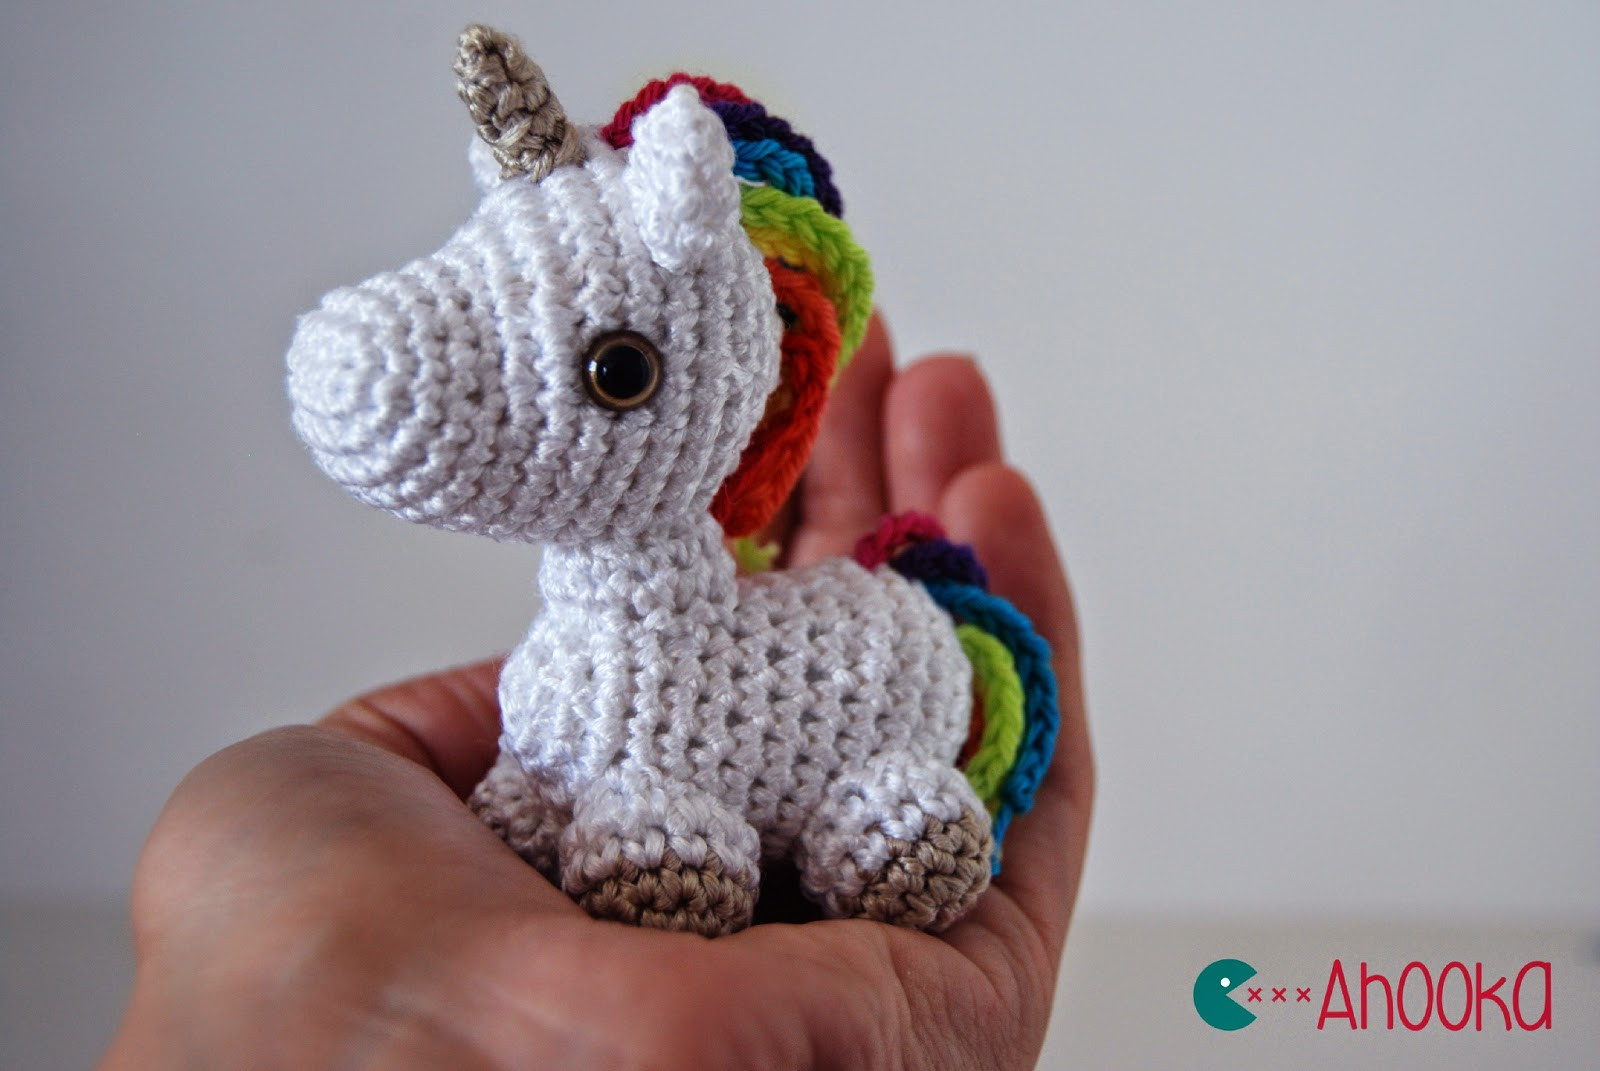 Free Unicorn Crochet Pattern Unique Dada Neon Crochet Tiny Rainbow Unicorn Amigurumi by Of Free Unicorn Crochet Pattern Unique Dada Neon Crochet Tiny Rainbow Unicorn Amigurumi by